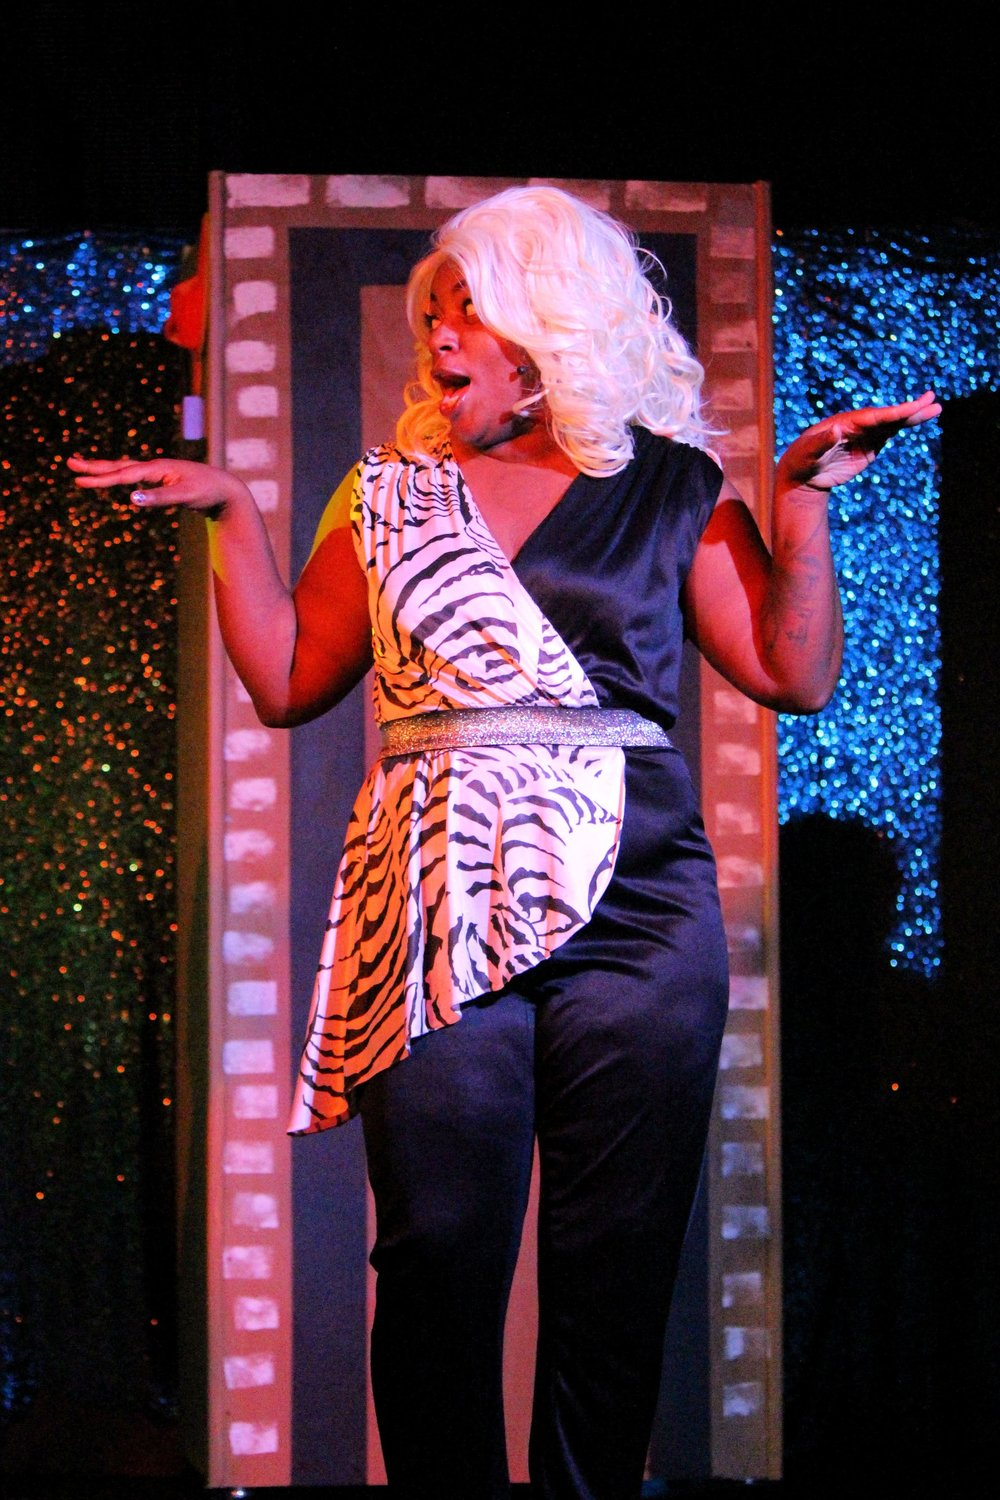 Ara-Viktoria Goins as Motormouth Maybelle.